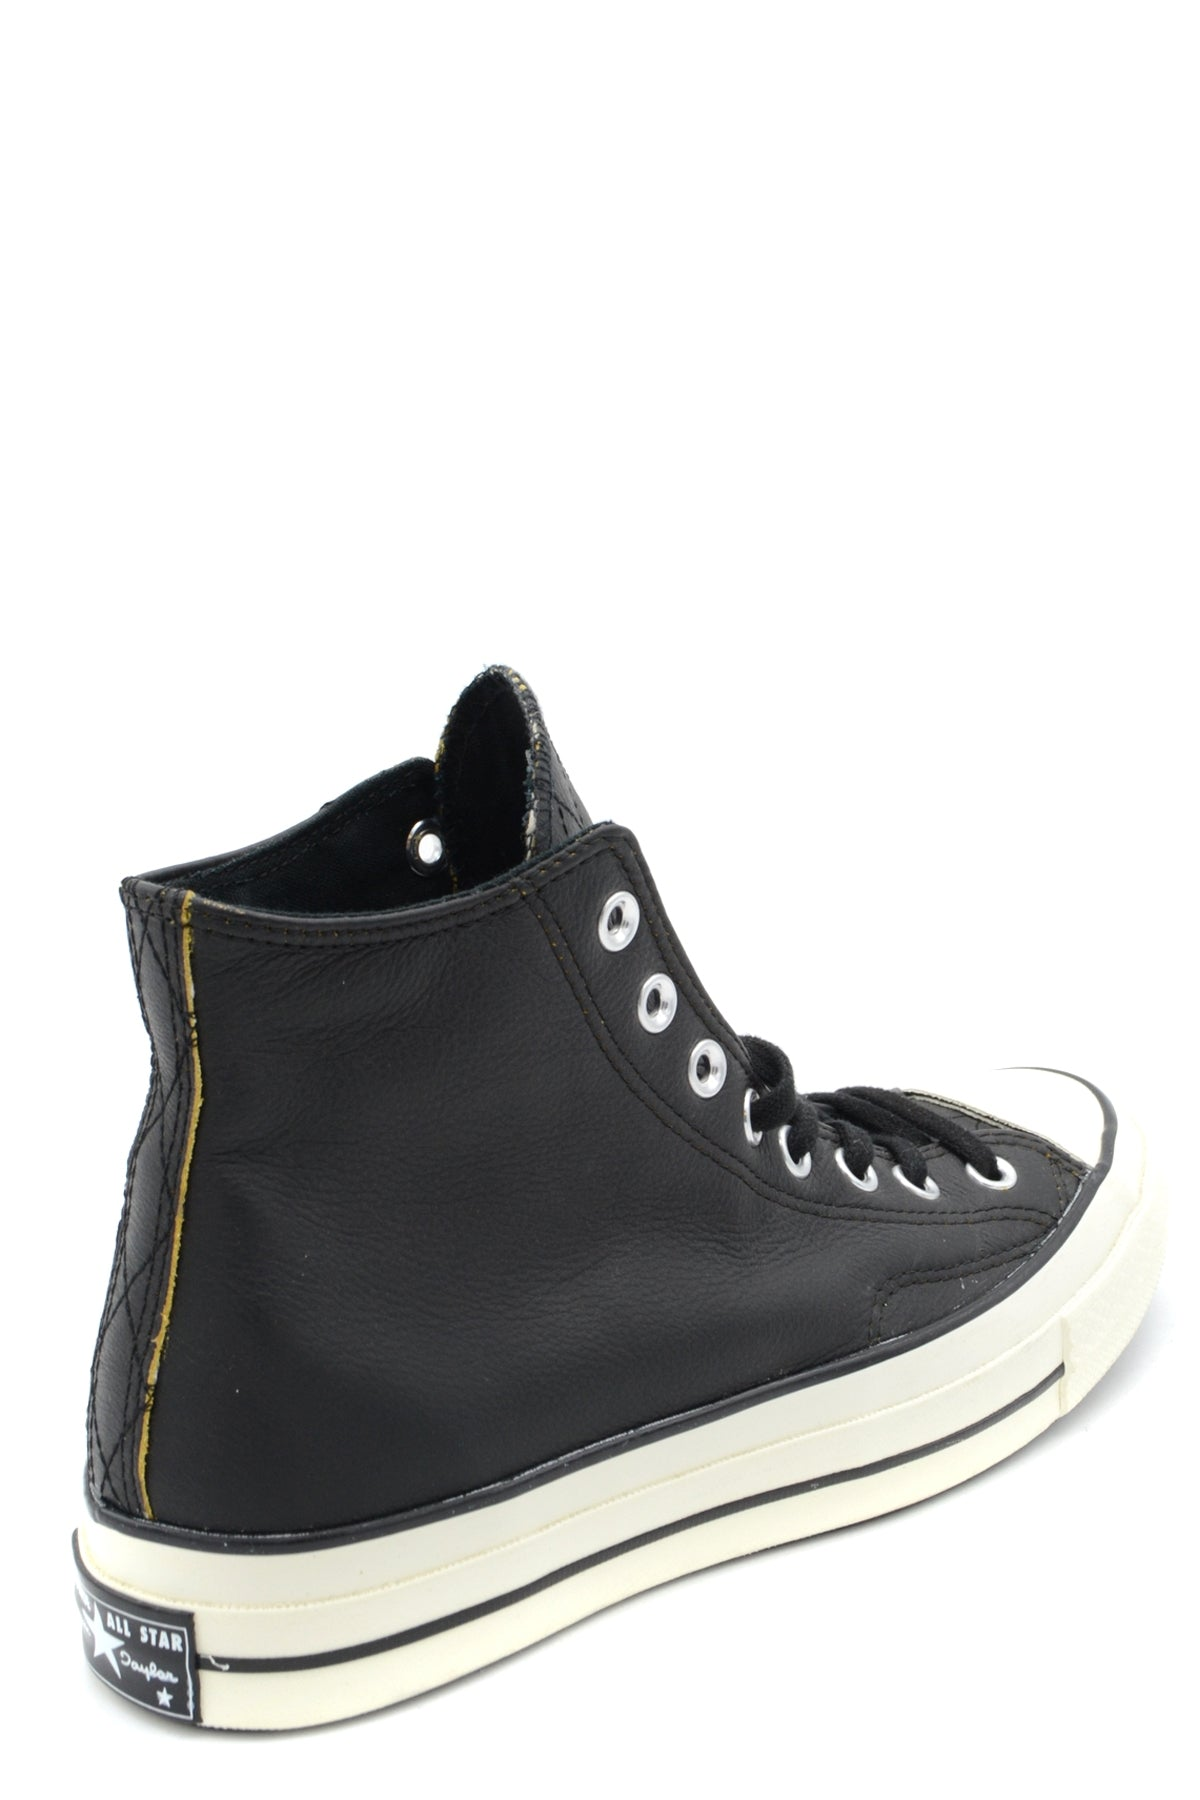 Shoes Converse-Sneakers - Shoes-Product Details Type Of Accessory: ShoesSeason: Fall / WinterTerms: New With LabelMain Color: BlackGender: ManMade In: VietnamManufacturer Part Number: 149534CSize: EuYear: 2018Composition: Leather 100%-Keyomi-Sook